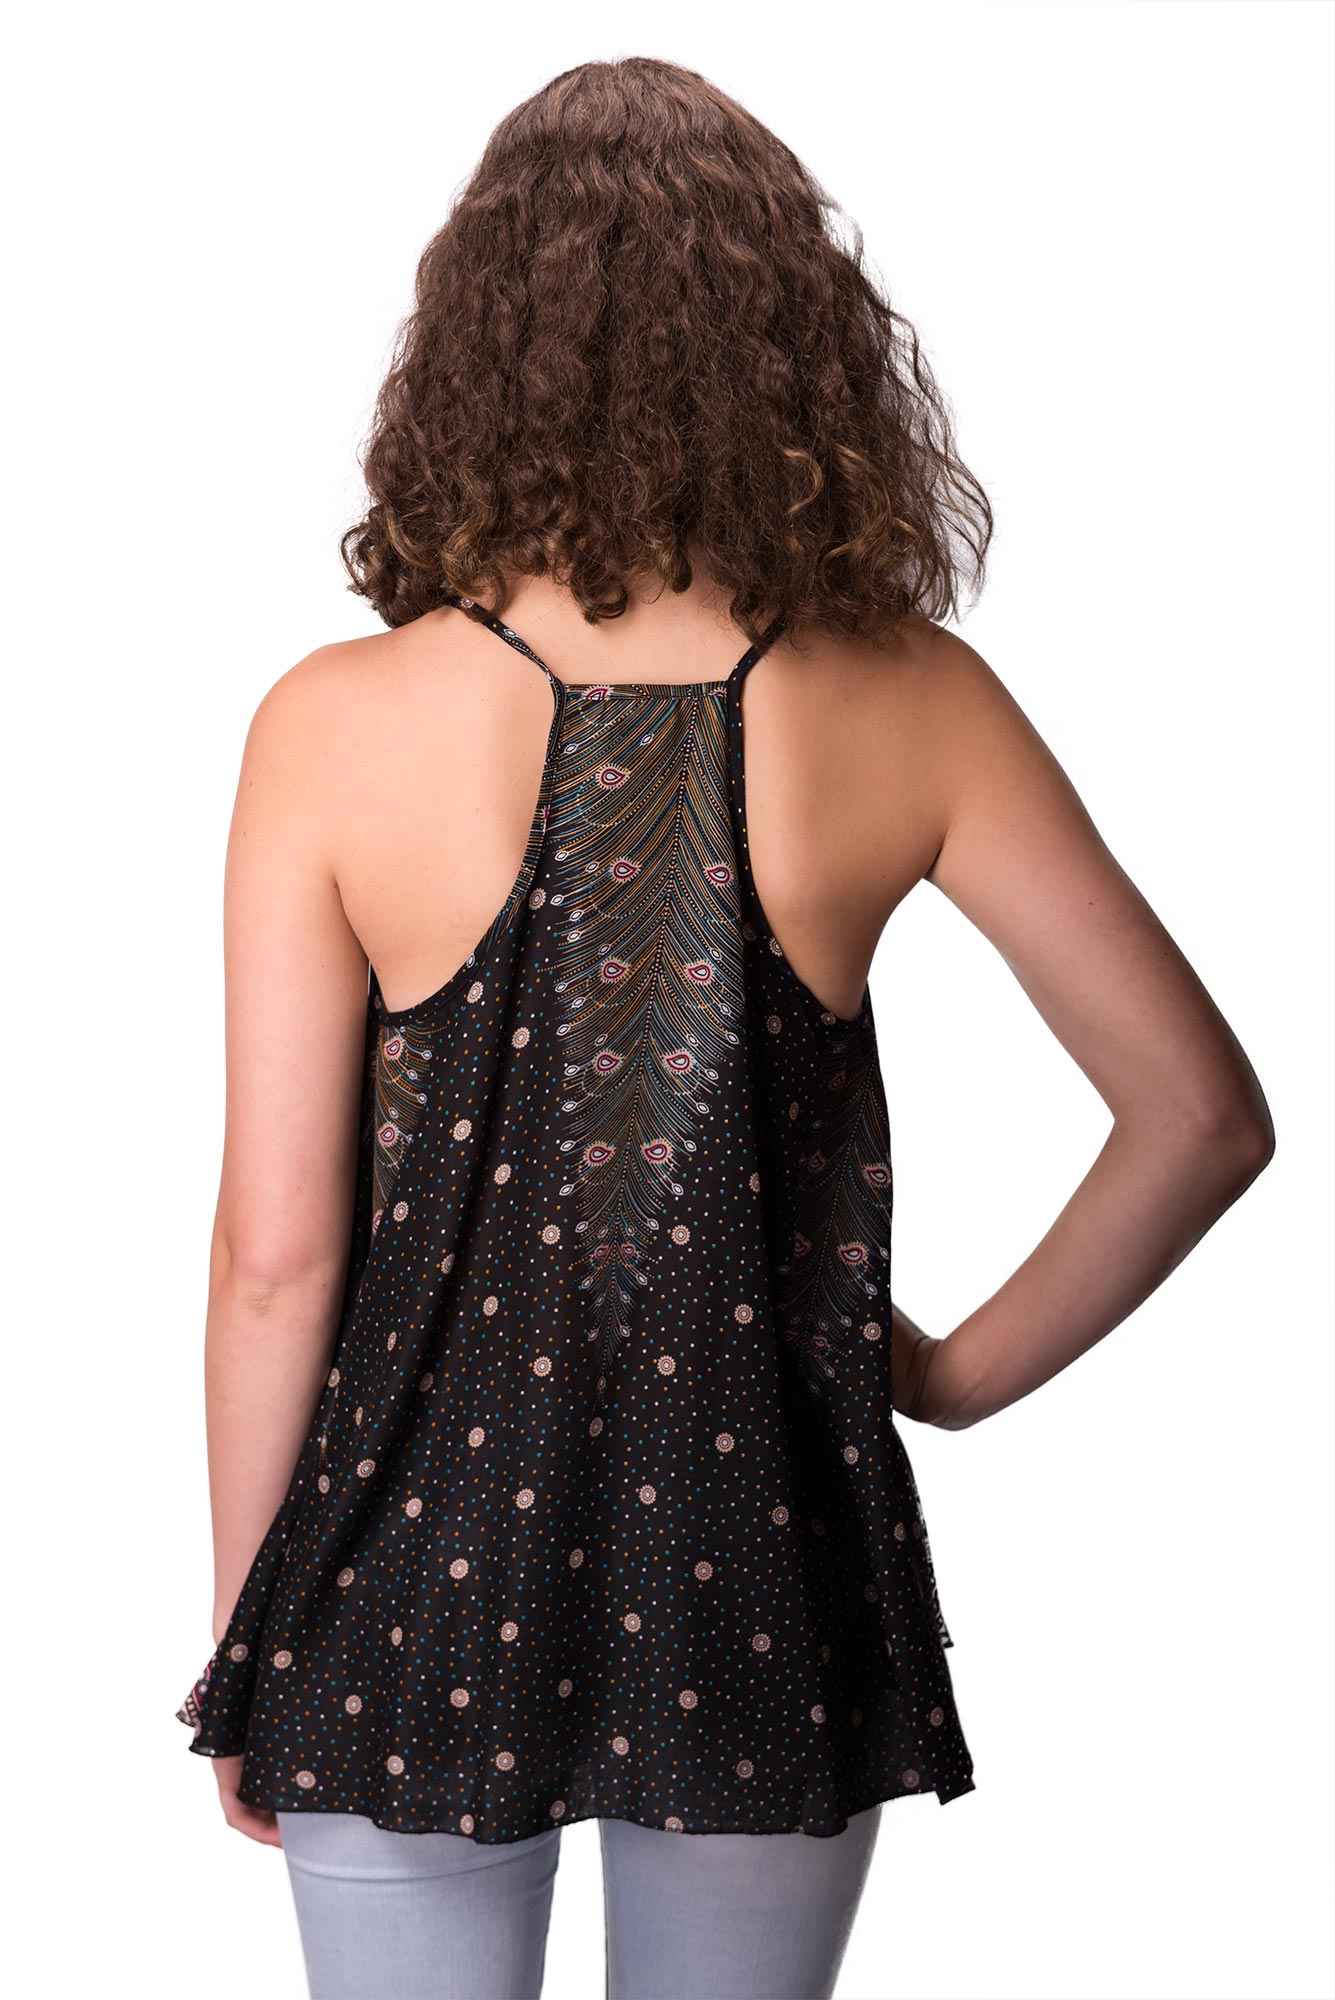 Peacock Print Cami Top - Black Multi - 4484K